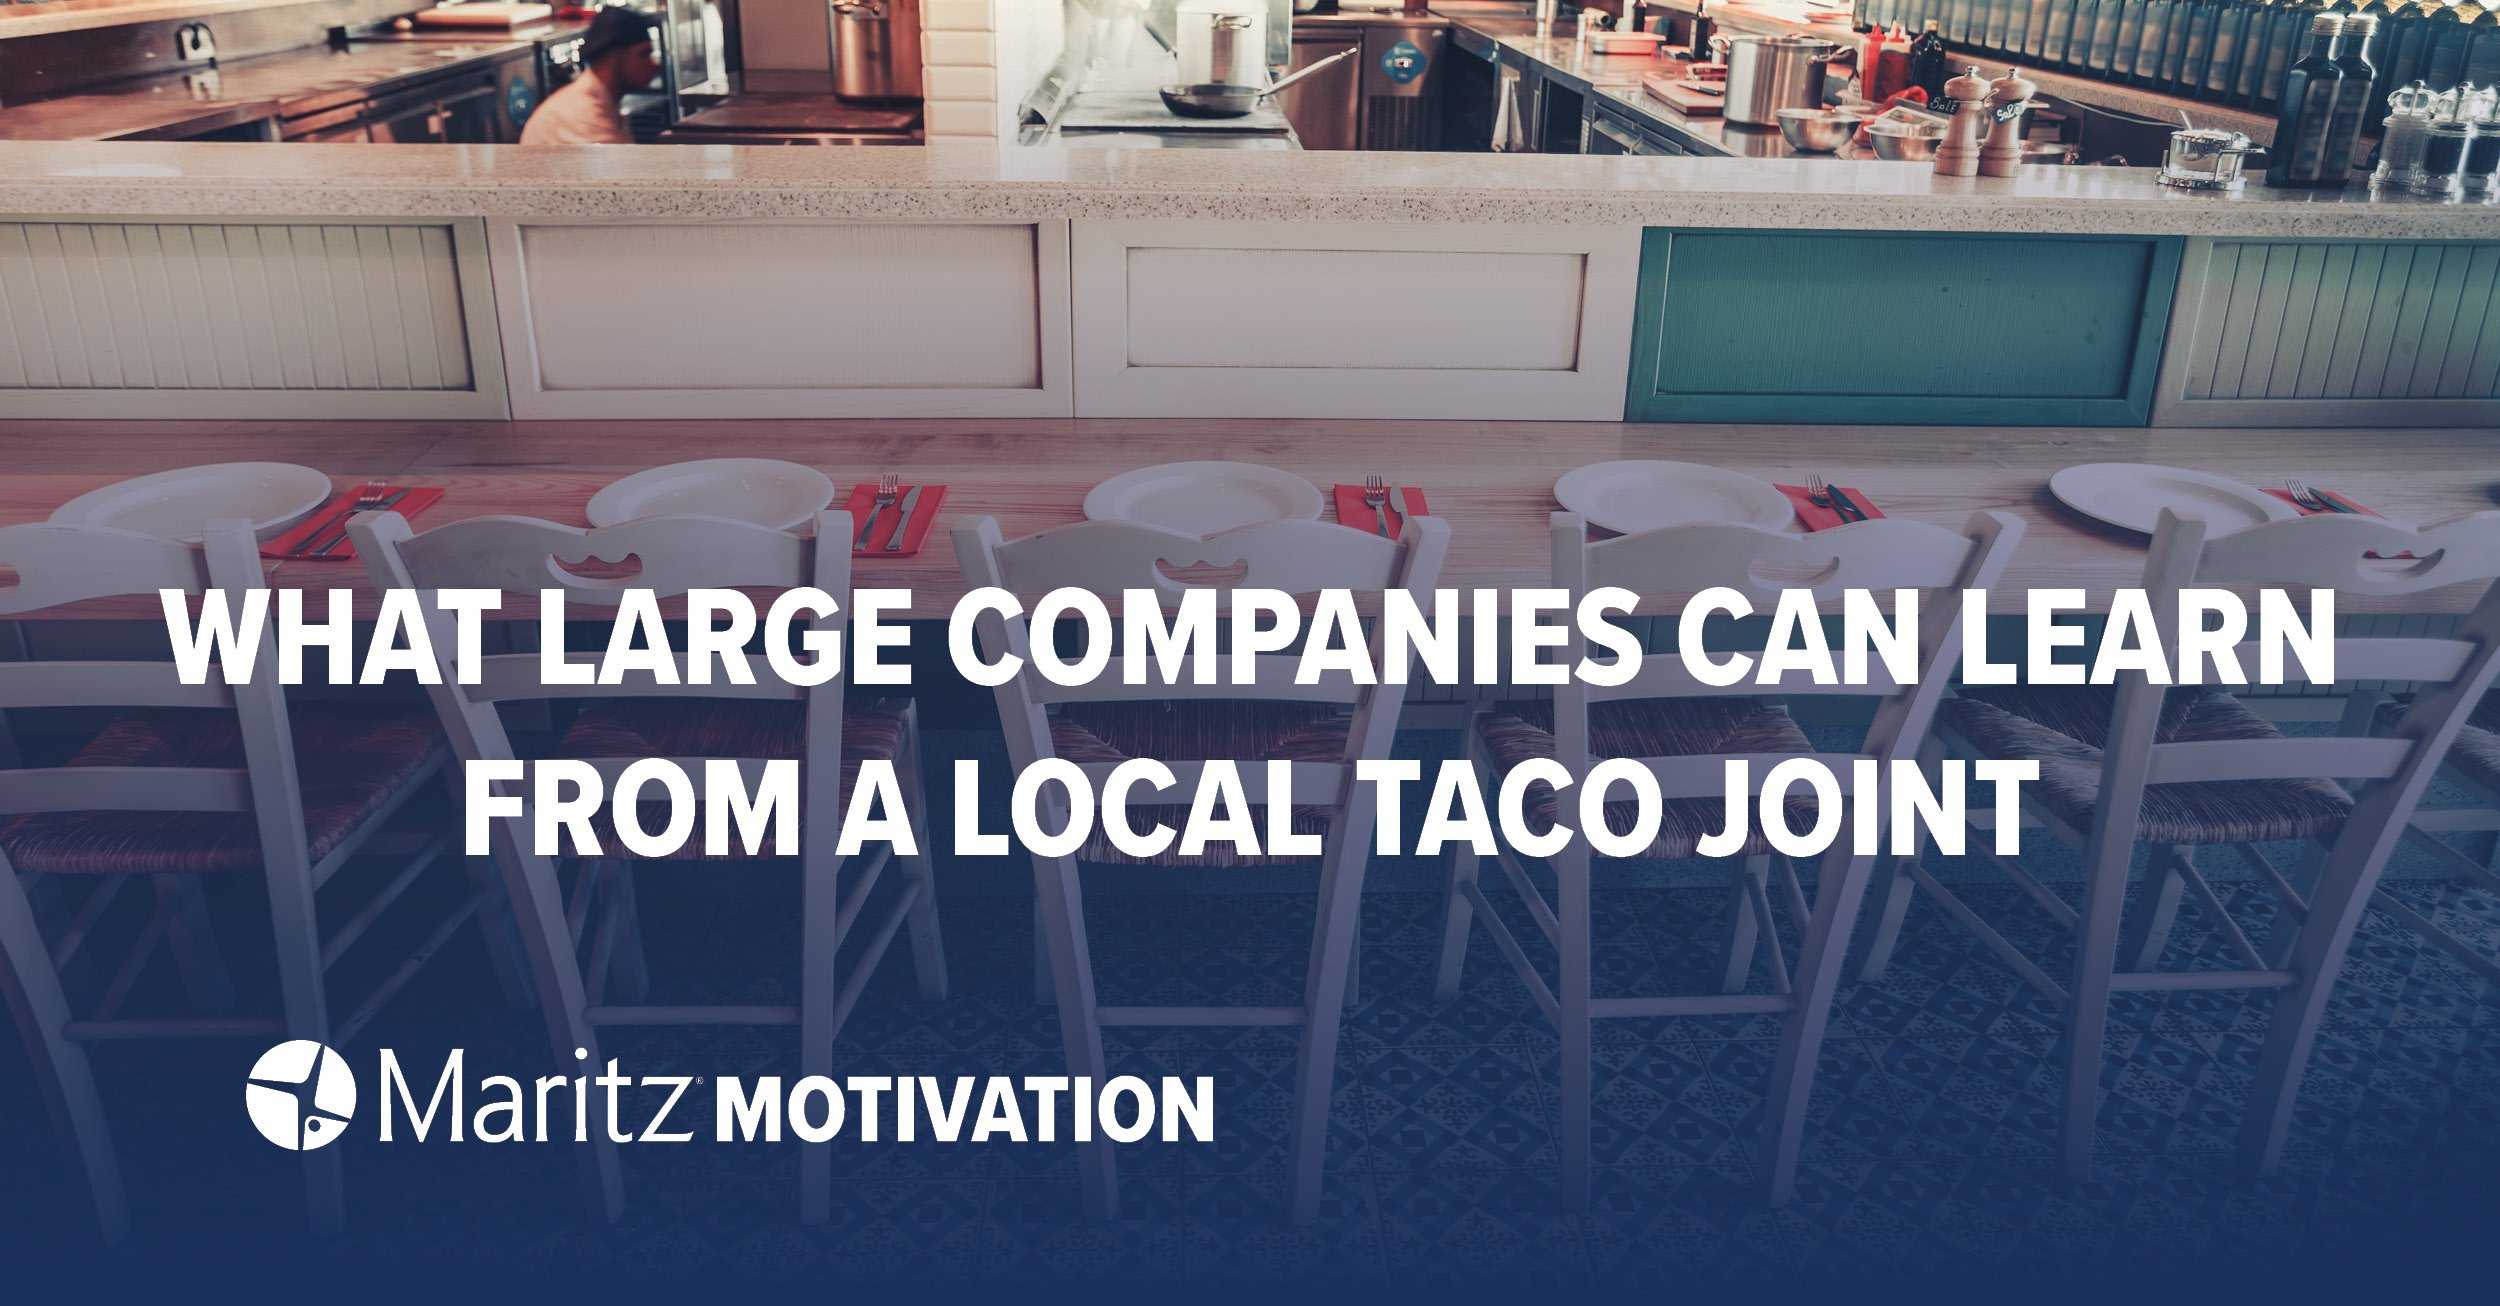 What Large Companies Can Learn From a Local Taco Joint